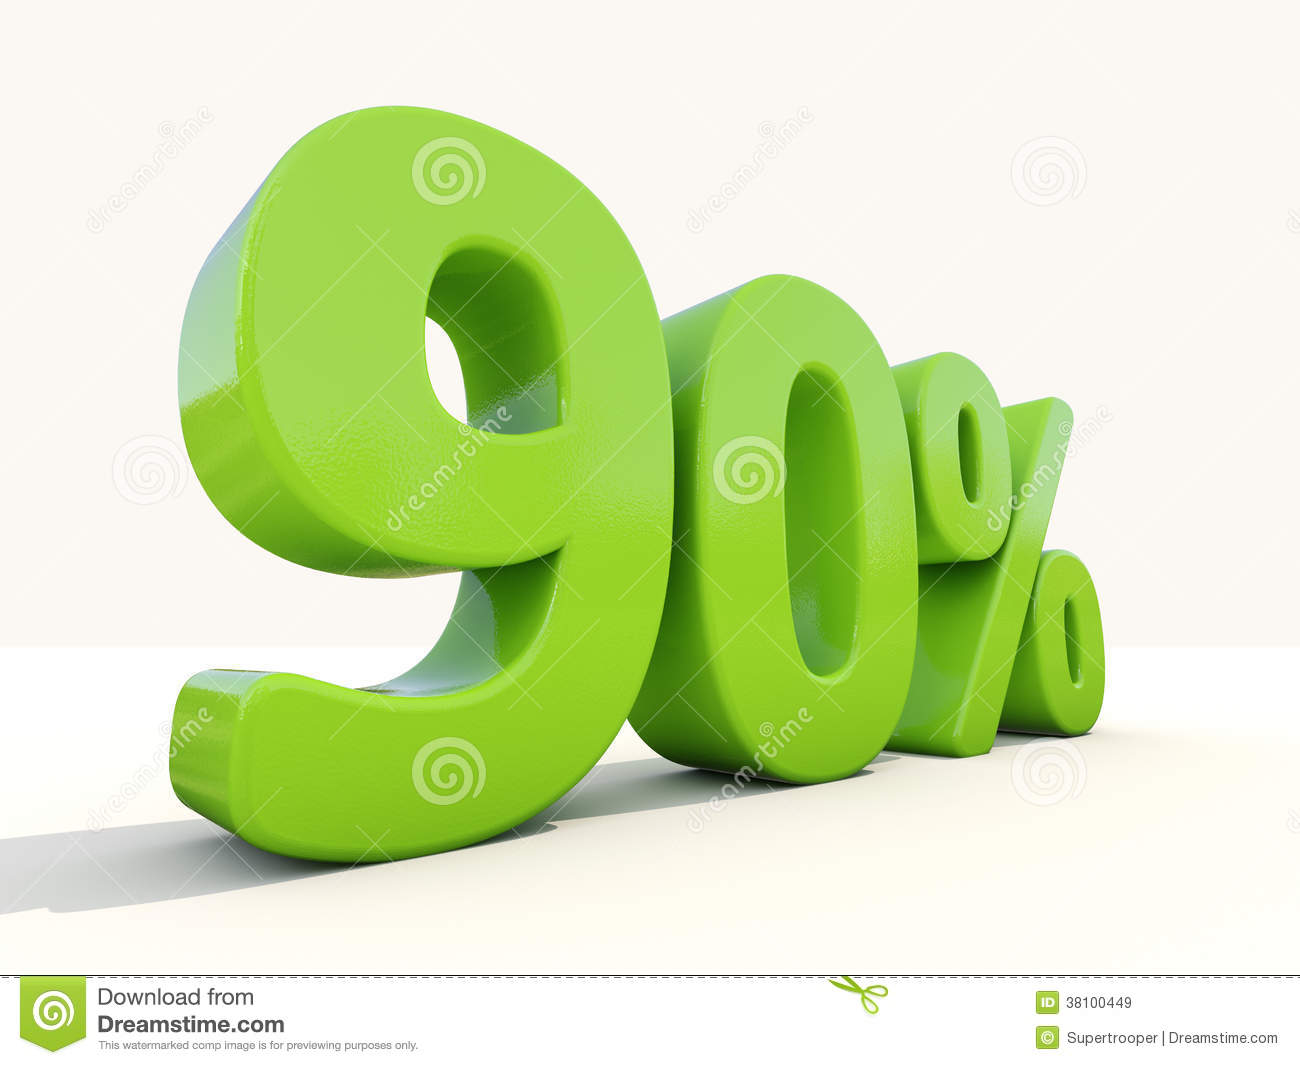 90  percentage rate icon on a white background